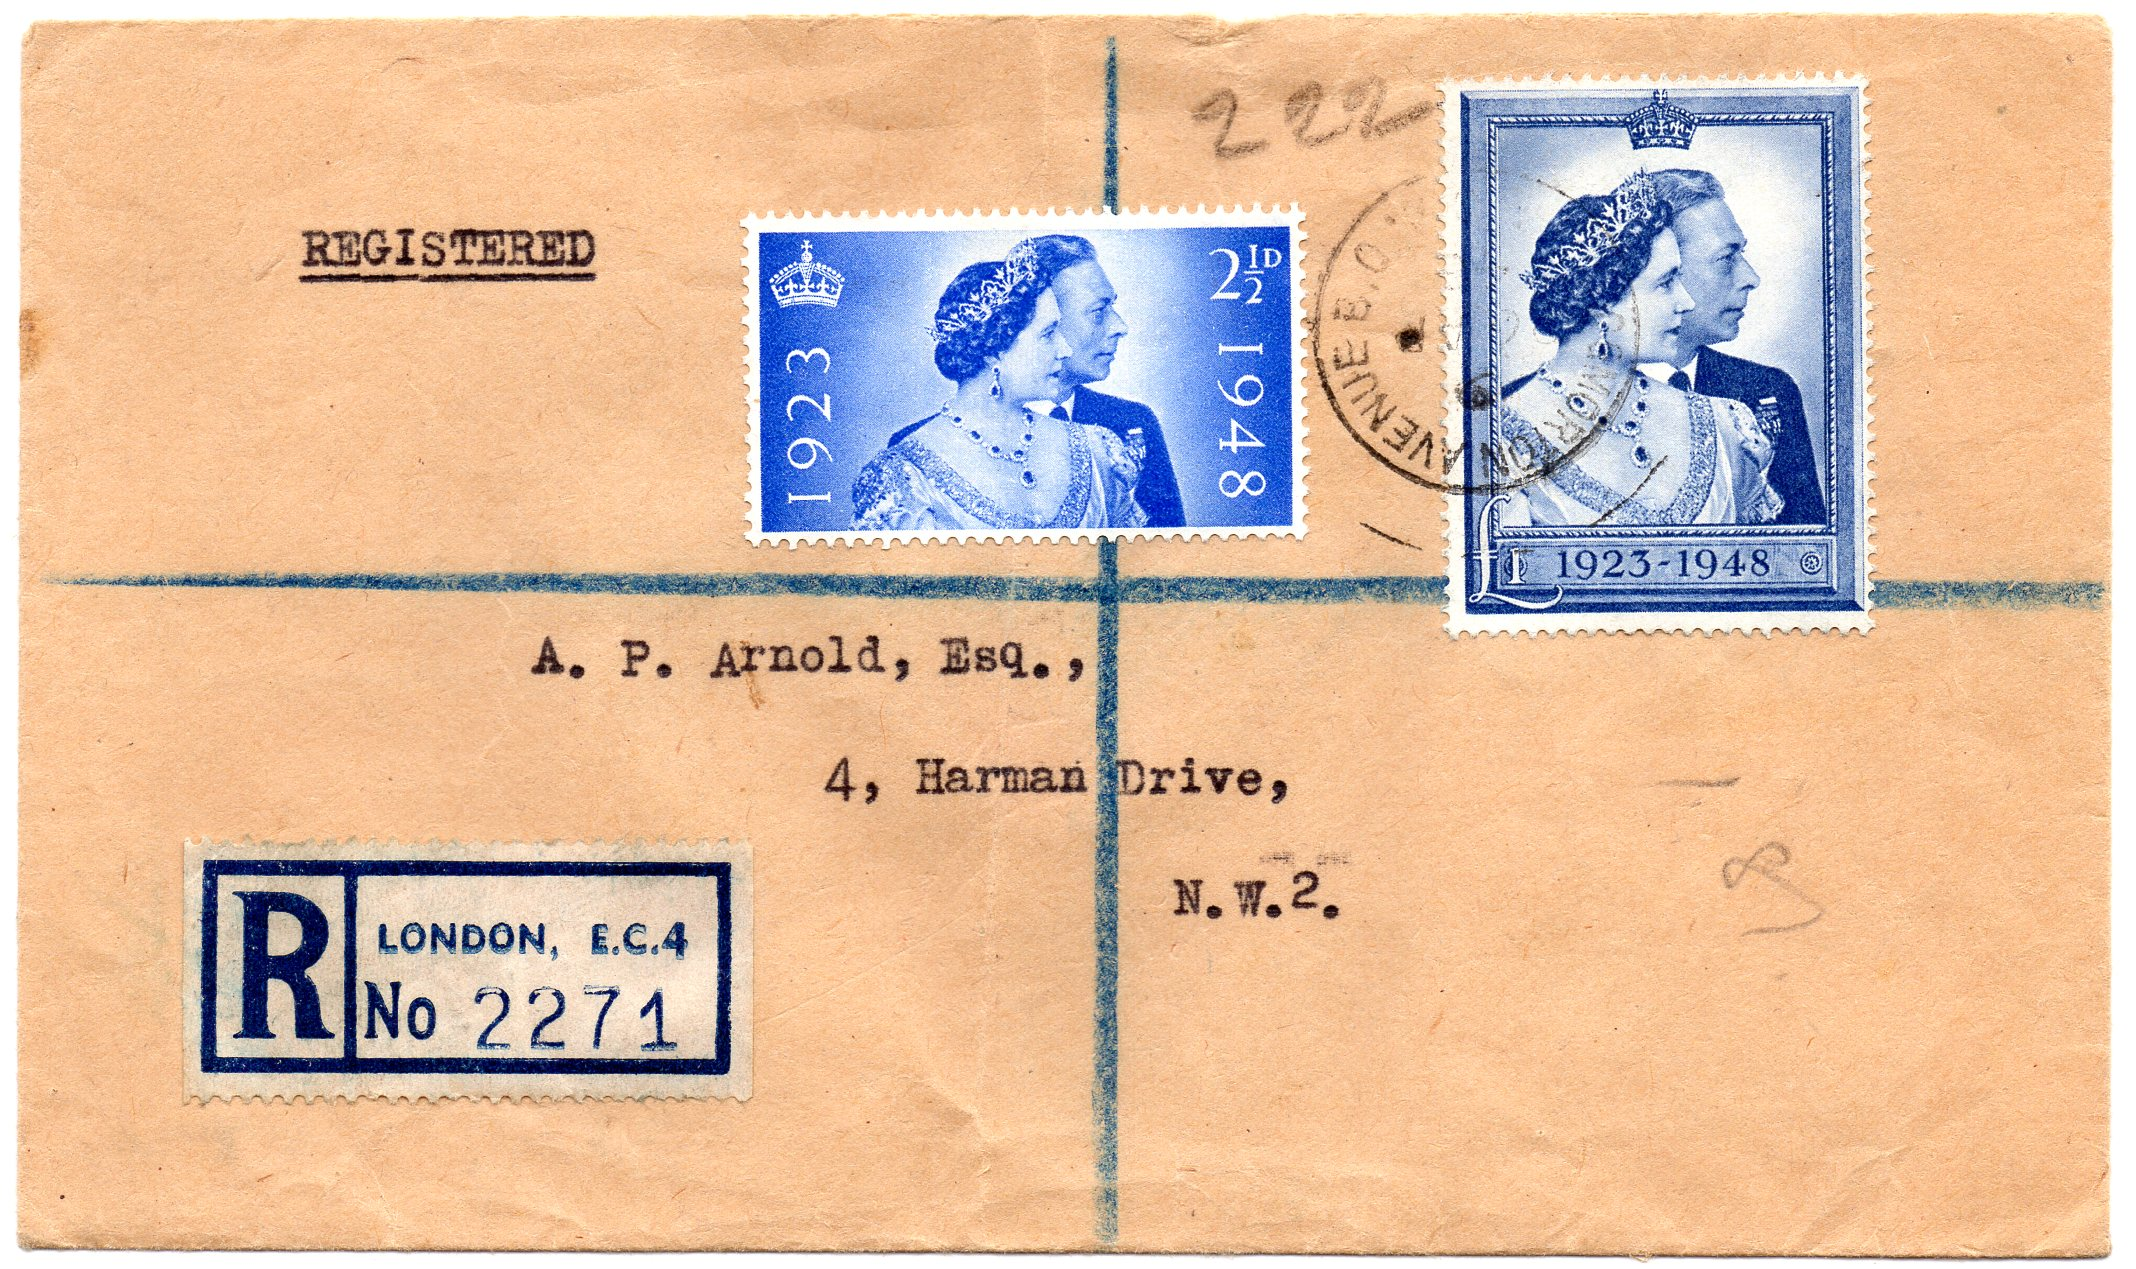 1948 Silver Wedding Registered First Day Cover 26 Ap 1948